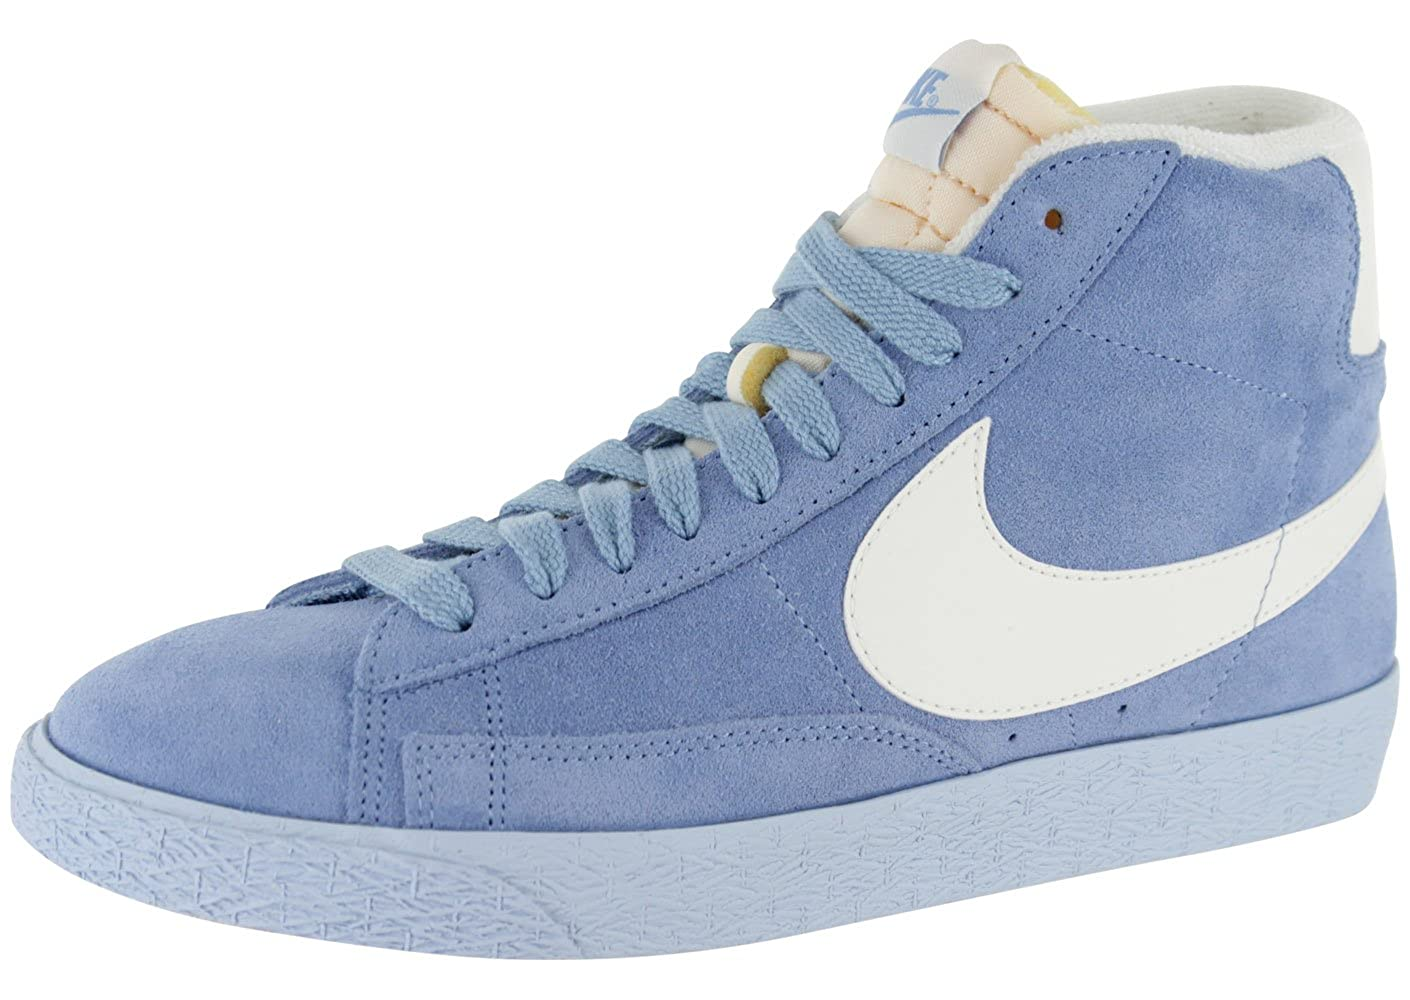 2a3a30156430 Nike Blazer Mid Blue 6 UK  Amazon.co.uk  Shoes   Bags